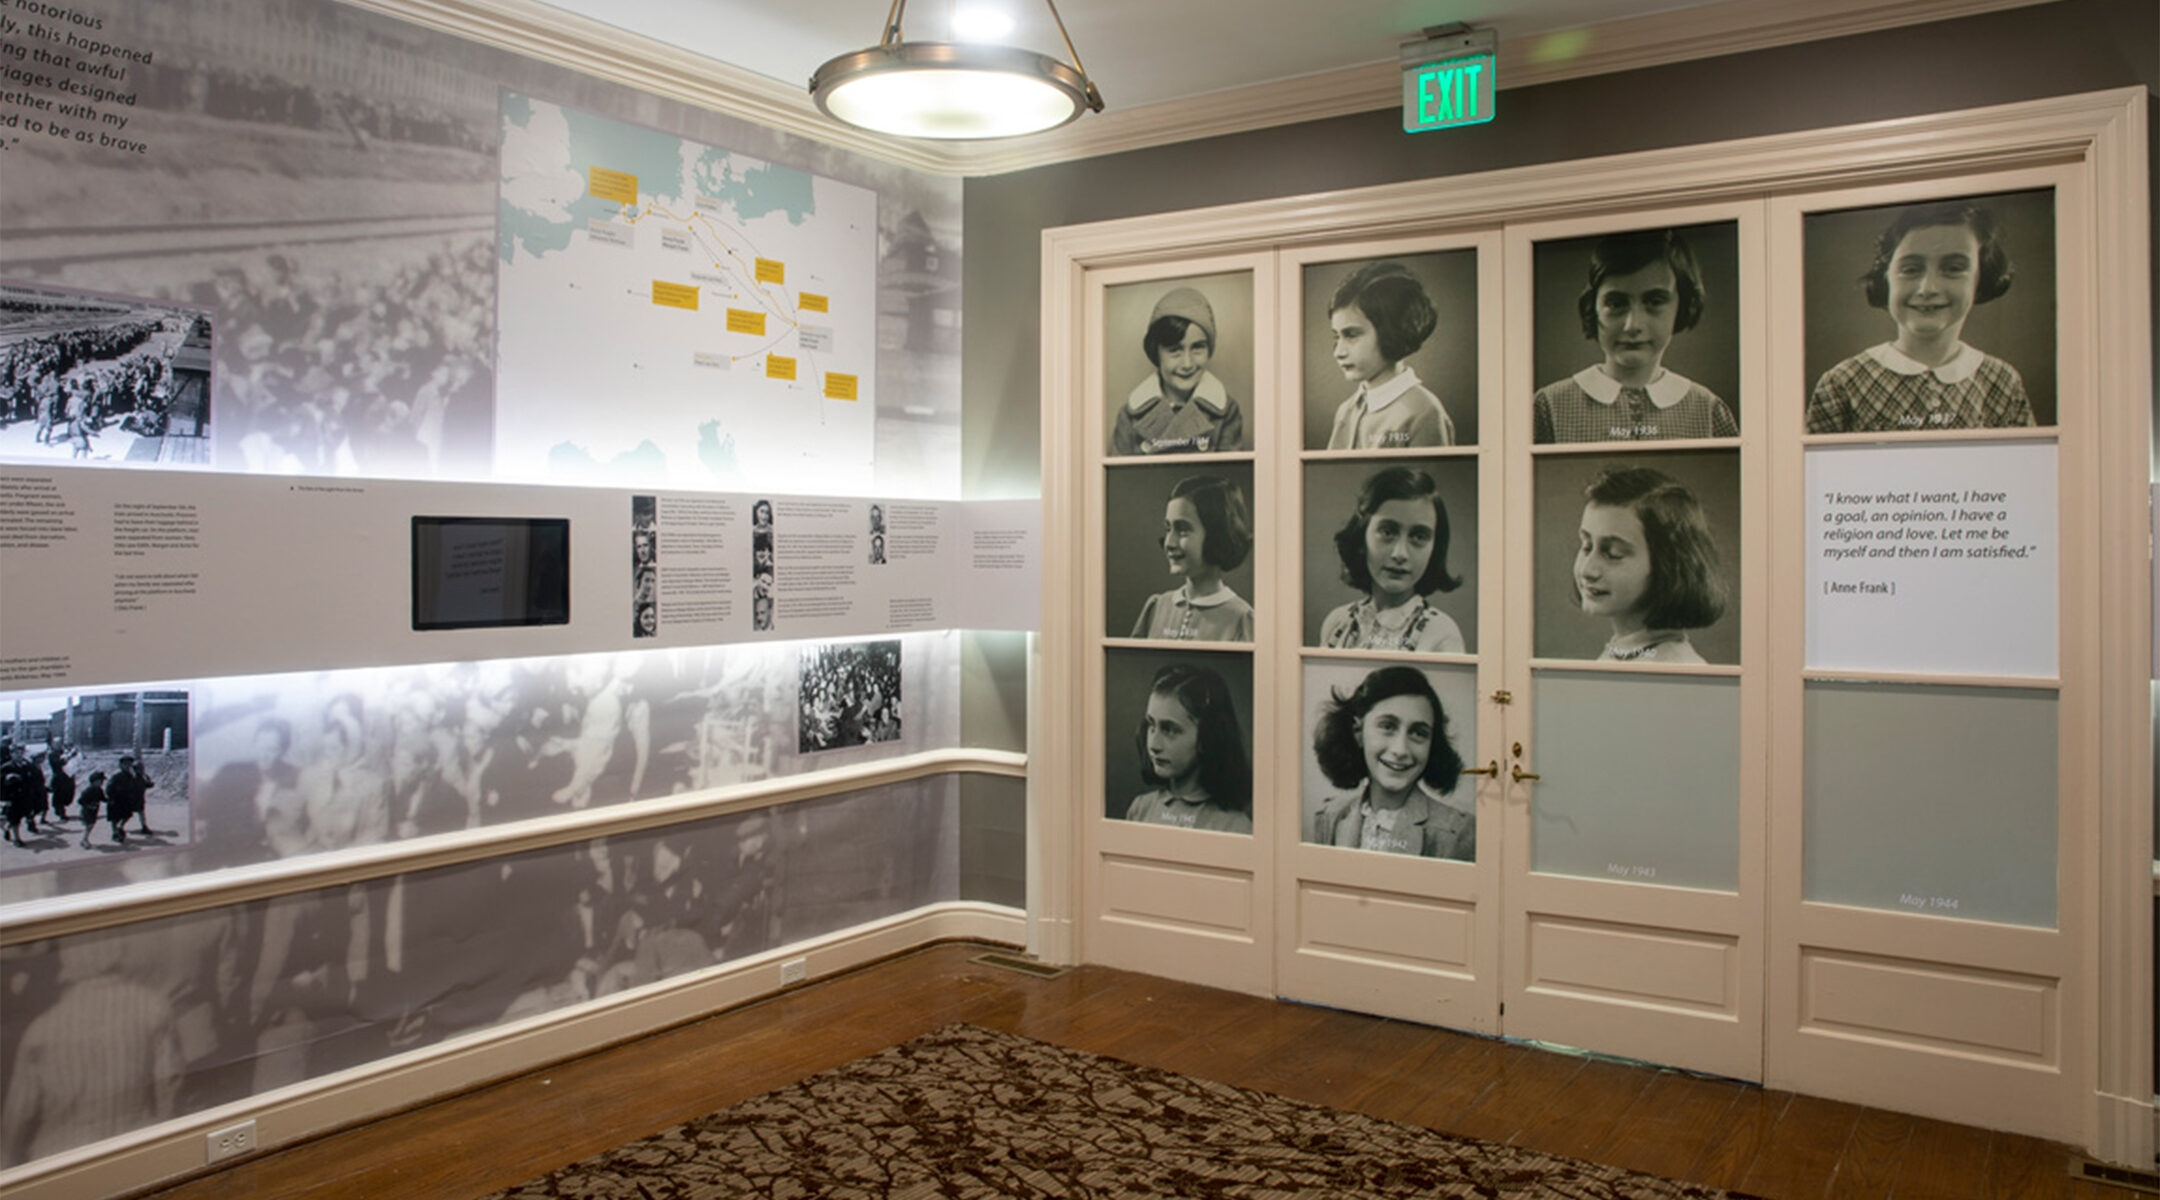 Part of the permanent exhibition of the Anne Frank Center at the University of South Carolina in Columbia, SC. (The University of South Carolina)